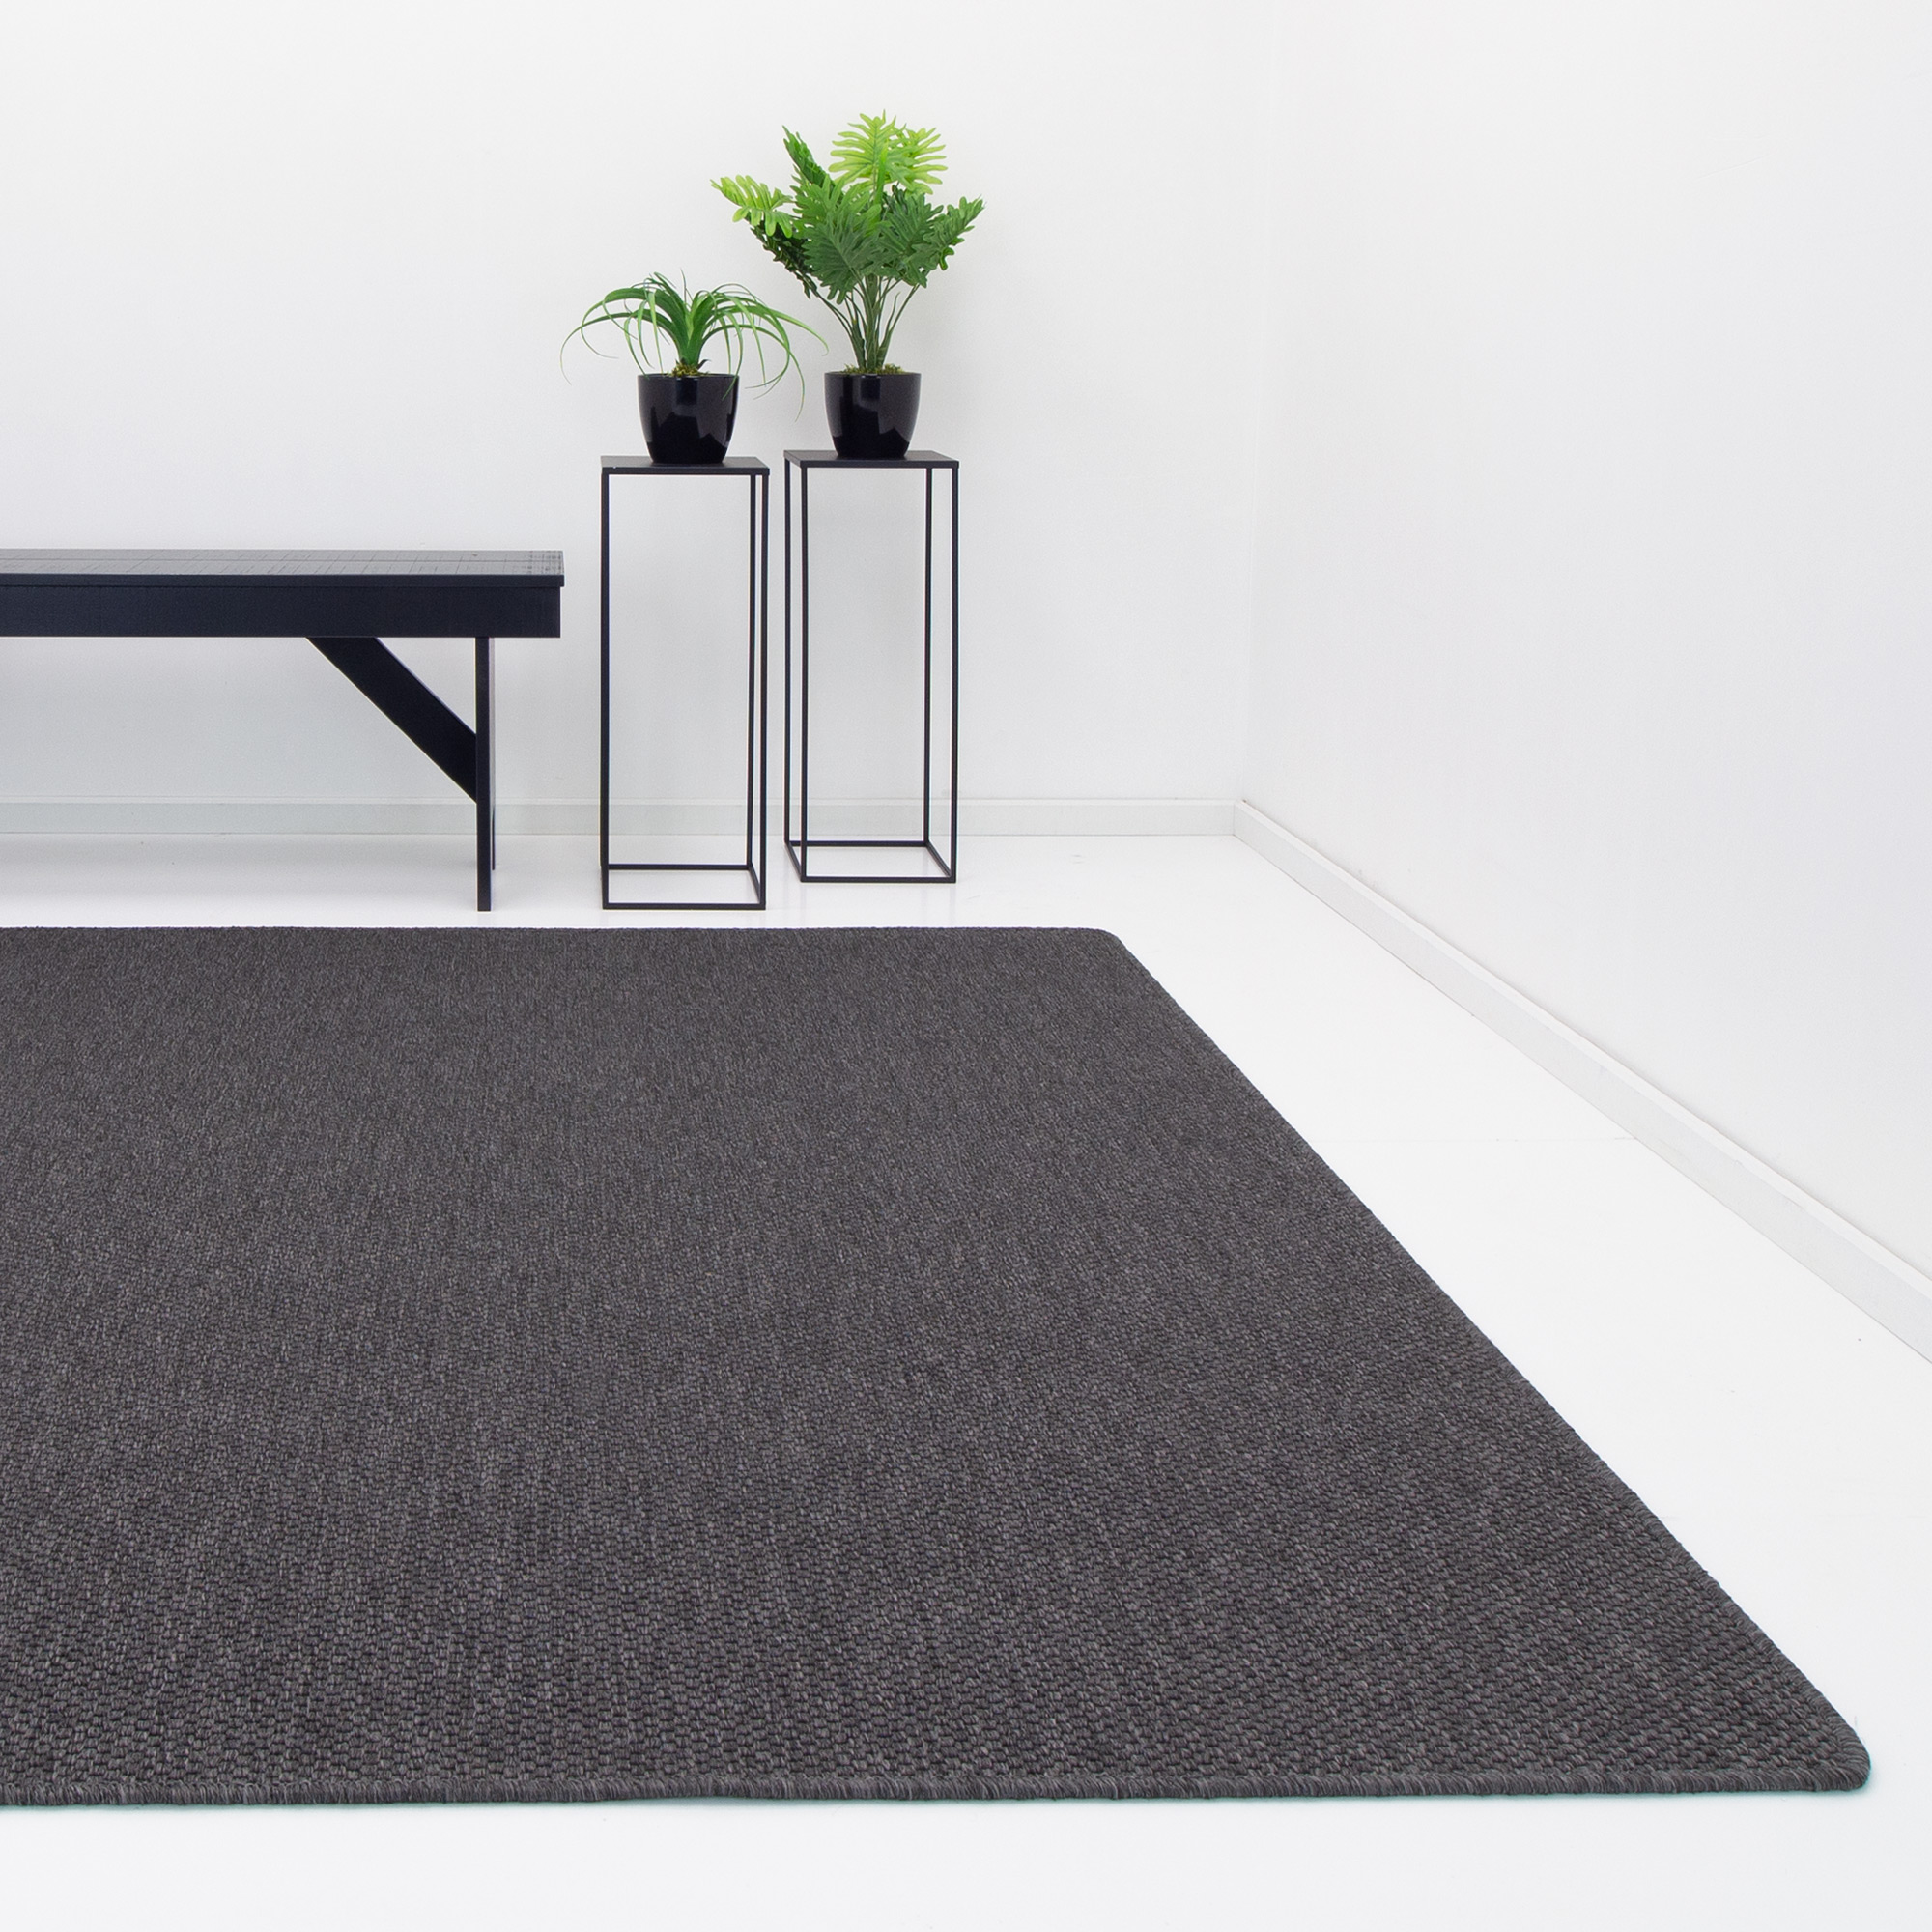 Vloerkleed Casablanca Natura Geweven Anthracite